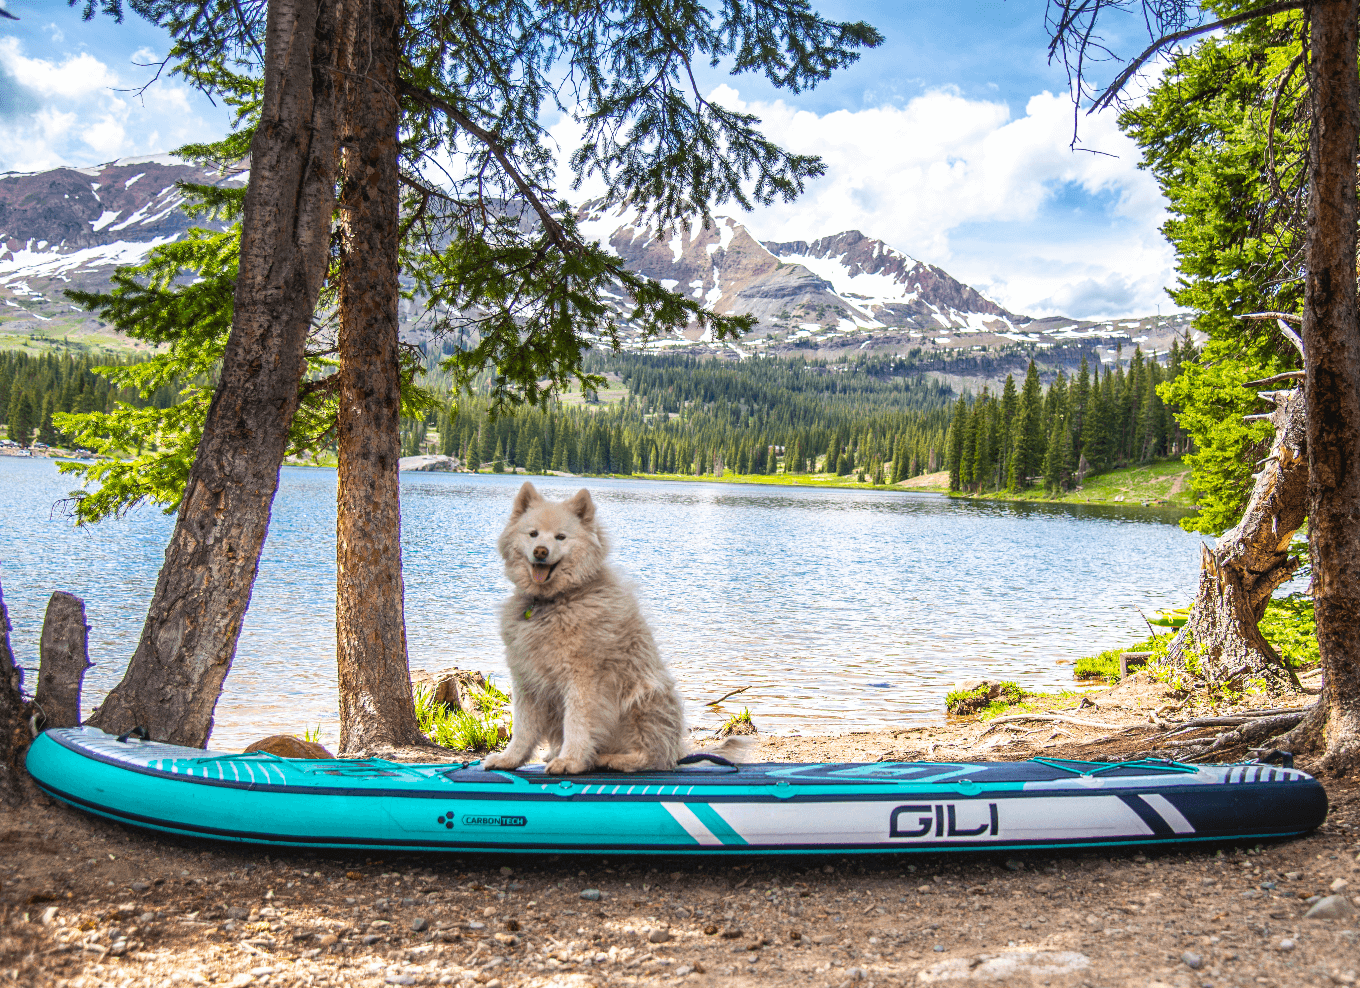 how to paddle board with your dog - gili board